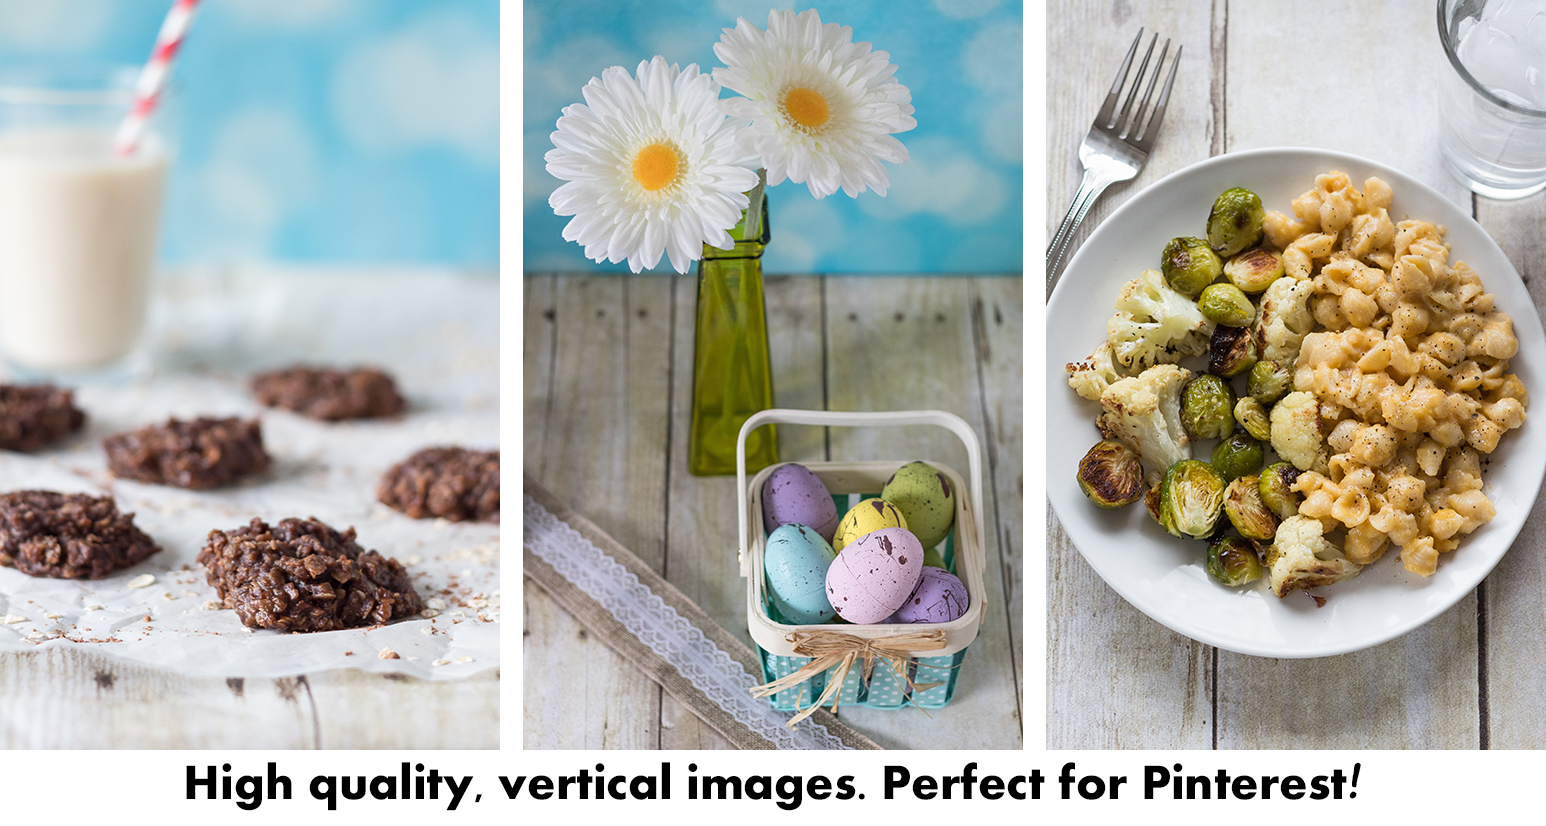 Pinterest Sharing Tips - Select High Quality, Vertical Images | https://www.roseclearfield.com